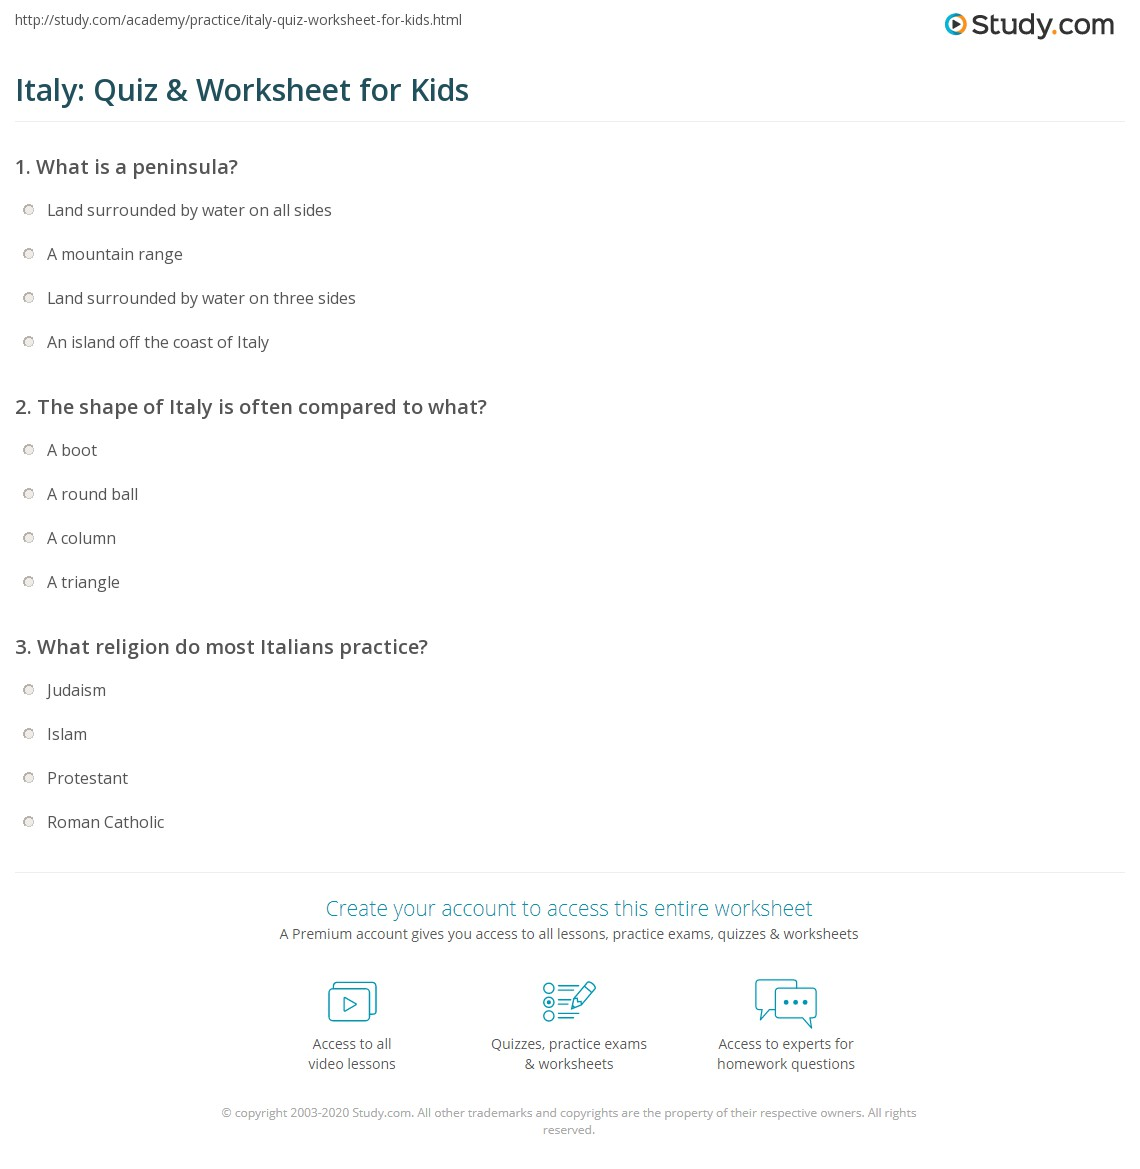 Italy: Quiz & Worksheet for Kids | Study com